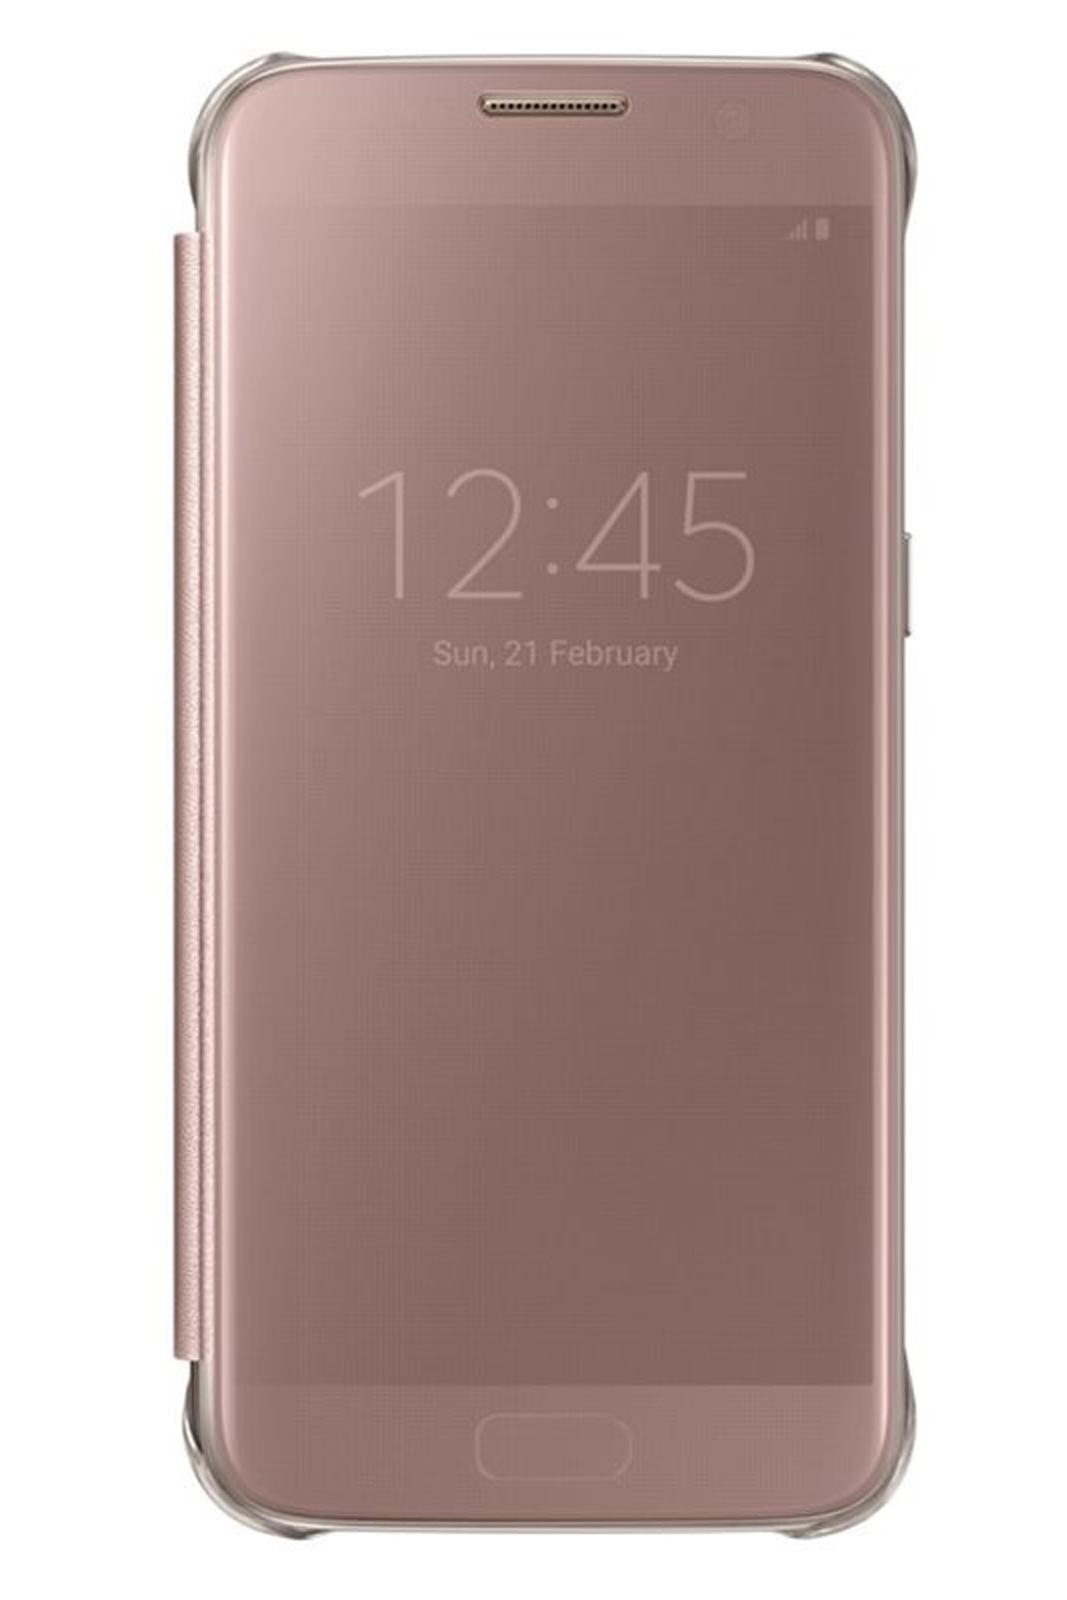 official samsung galaxy s7 rose gold clear view cover case ef zg930czegww. Black Bedroom Furniture Sets. Home Design Ideas